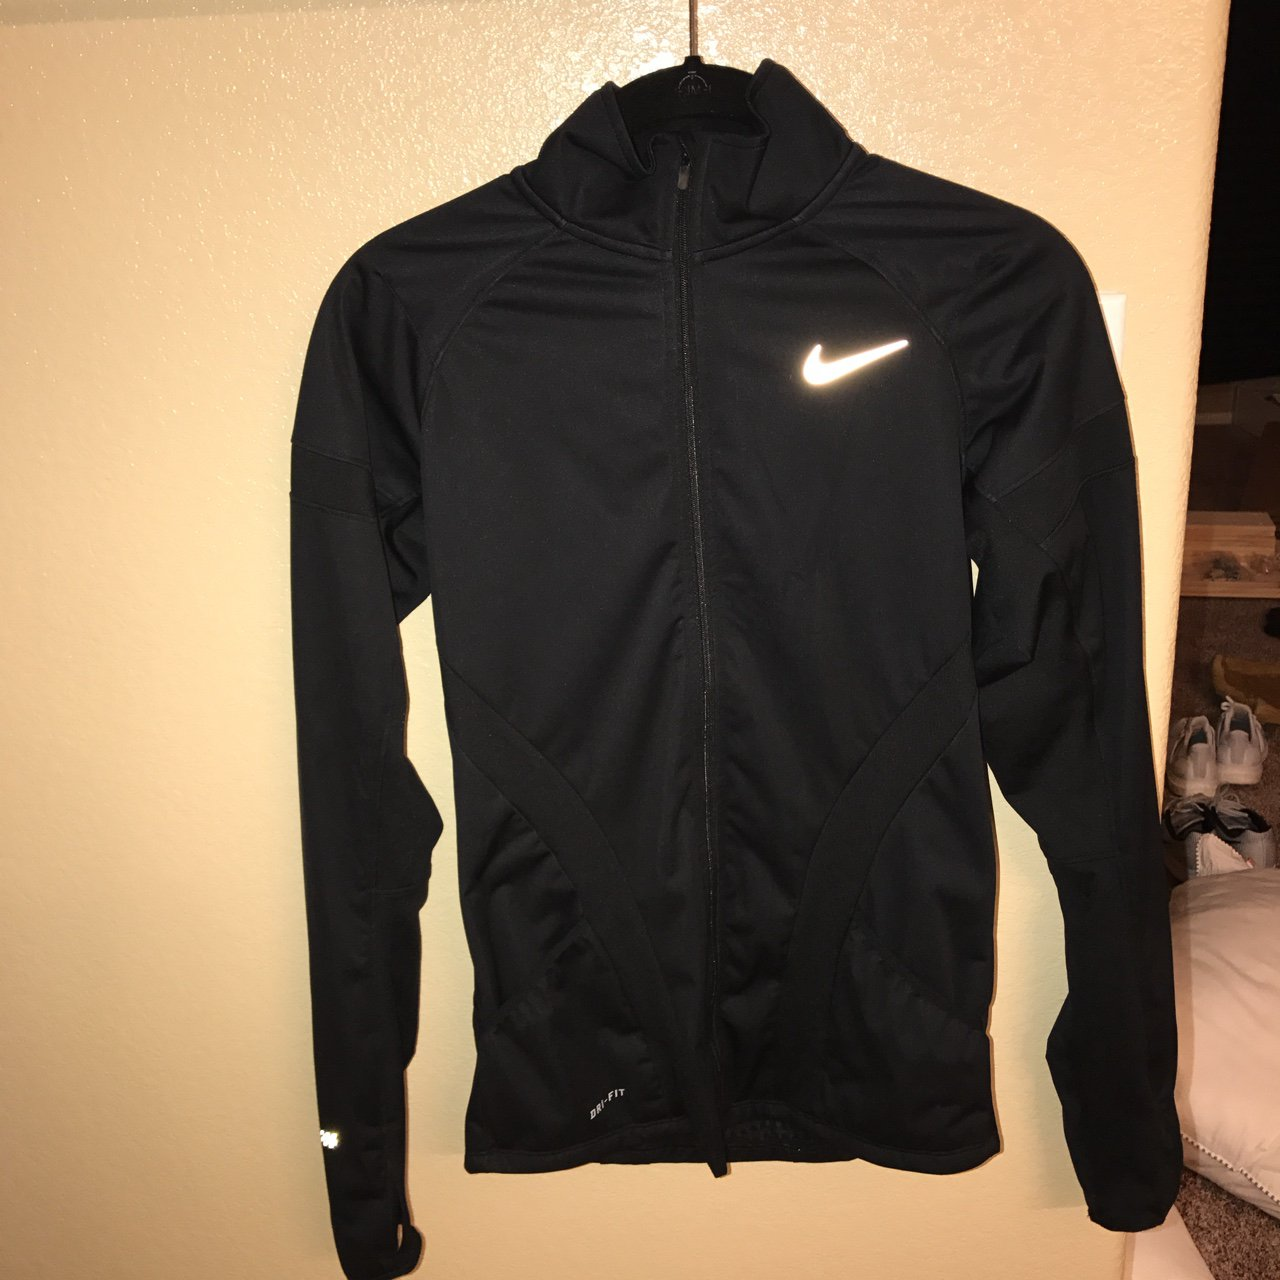 78bea28a233c Nike running jacket. has a thermal inside so it keeps you XS - Depop